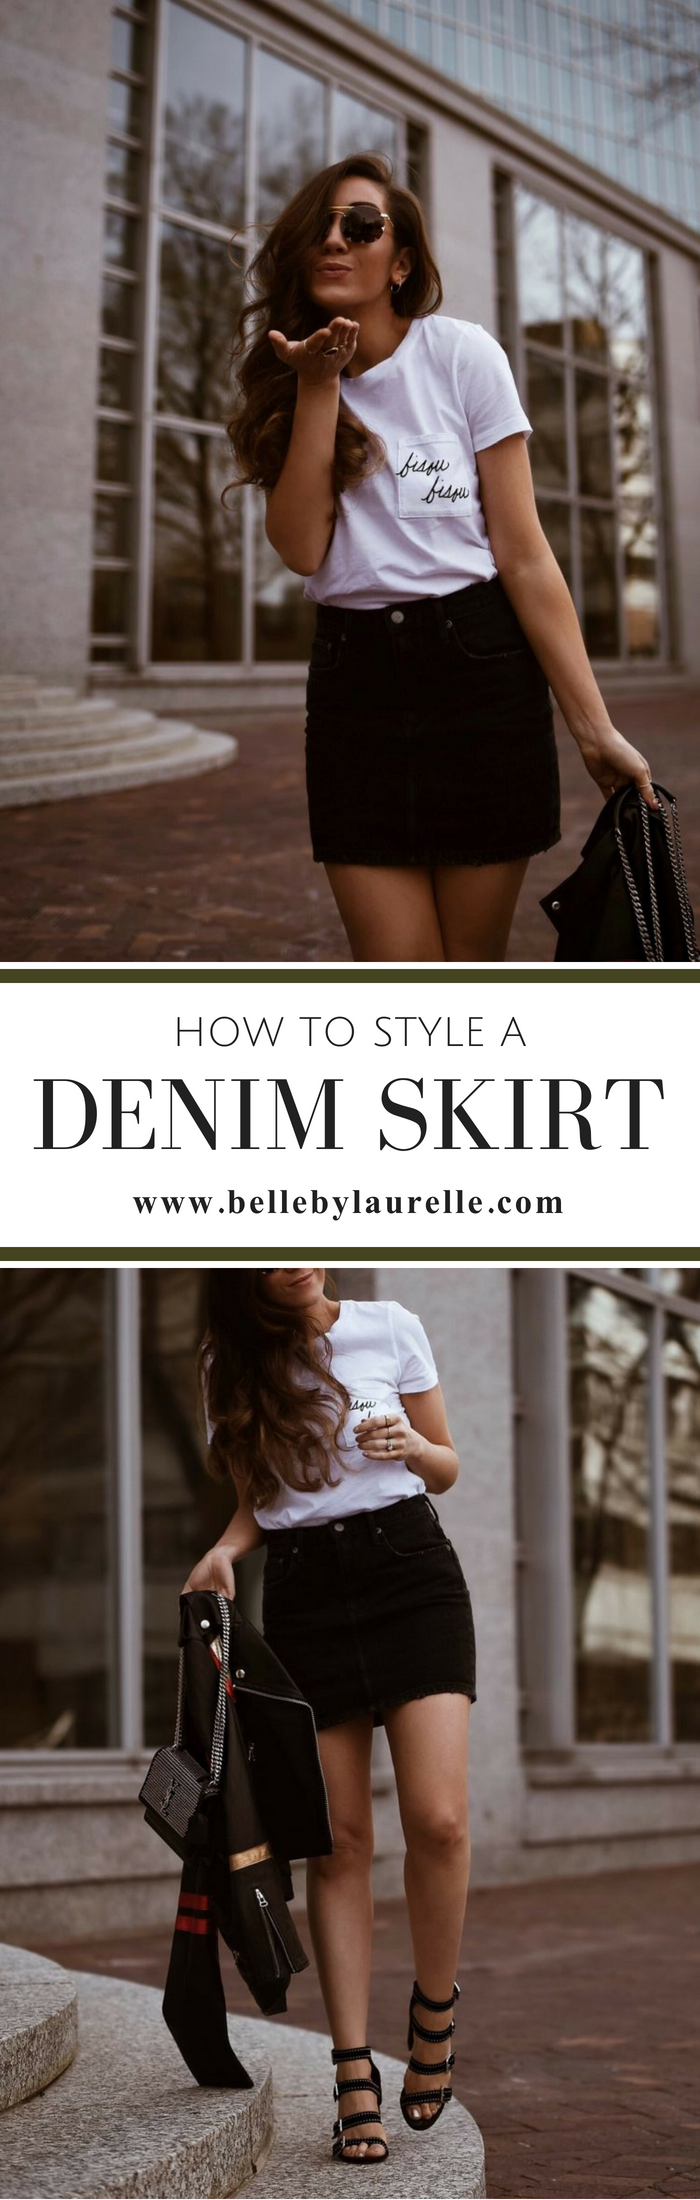 HOW TO STYLE DENIM SKIRT Belle by Laurelle